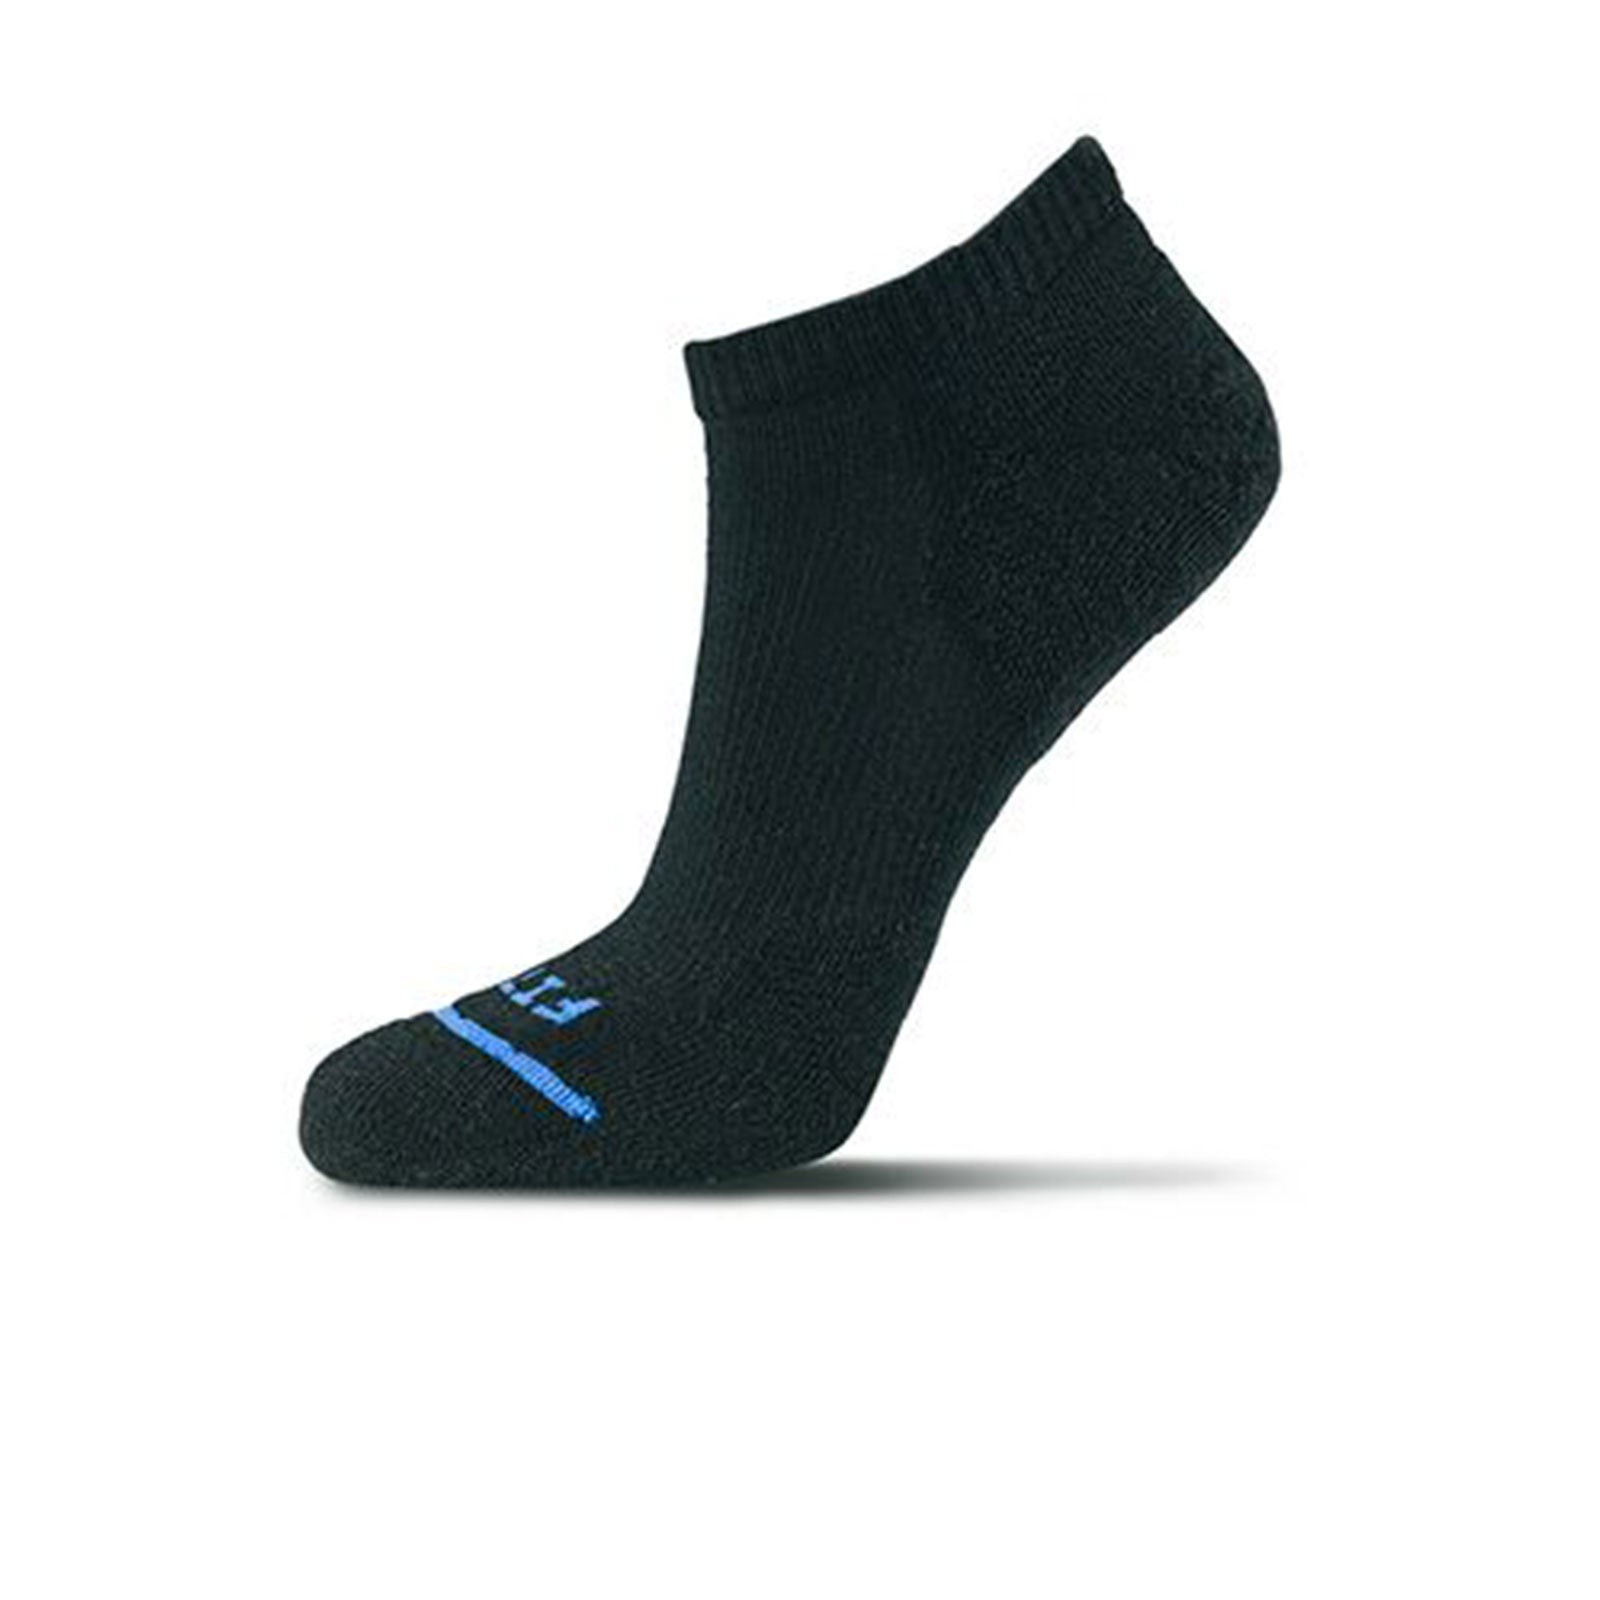 Fits Light Runner Low (Men) - Black Socks - Perf - Micro - The Heel Shoe Fitters